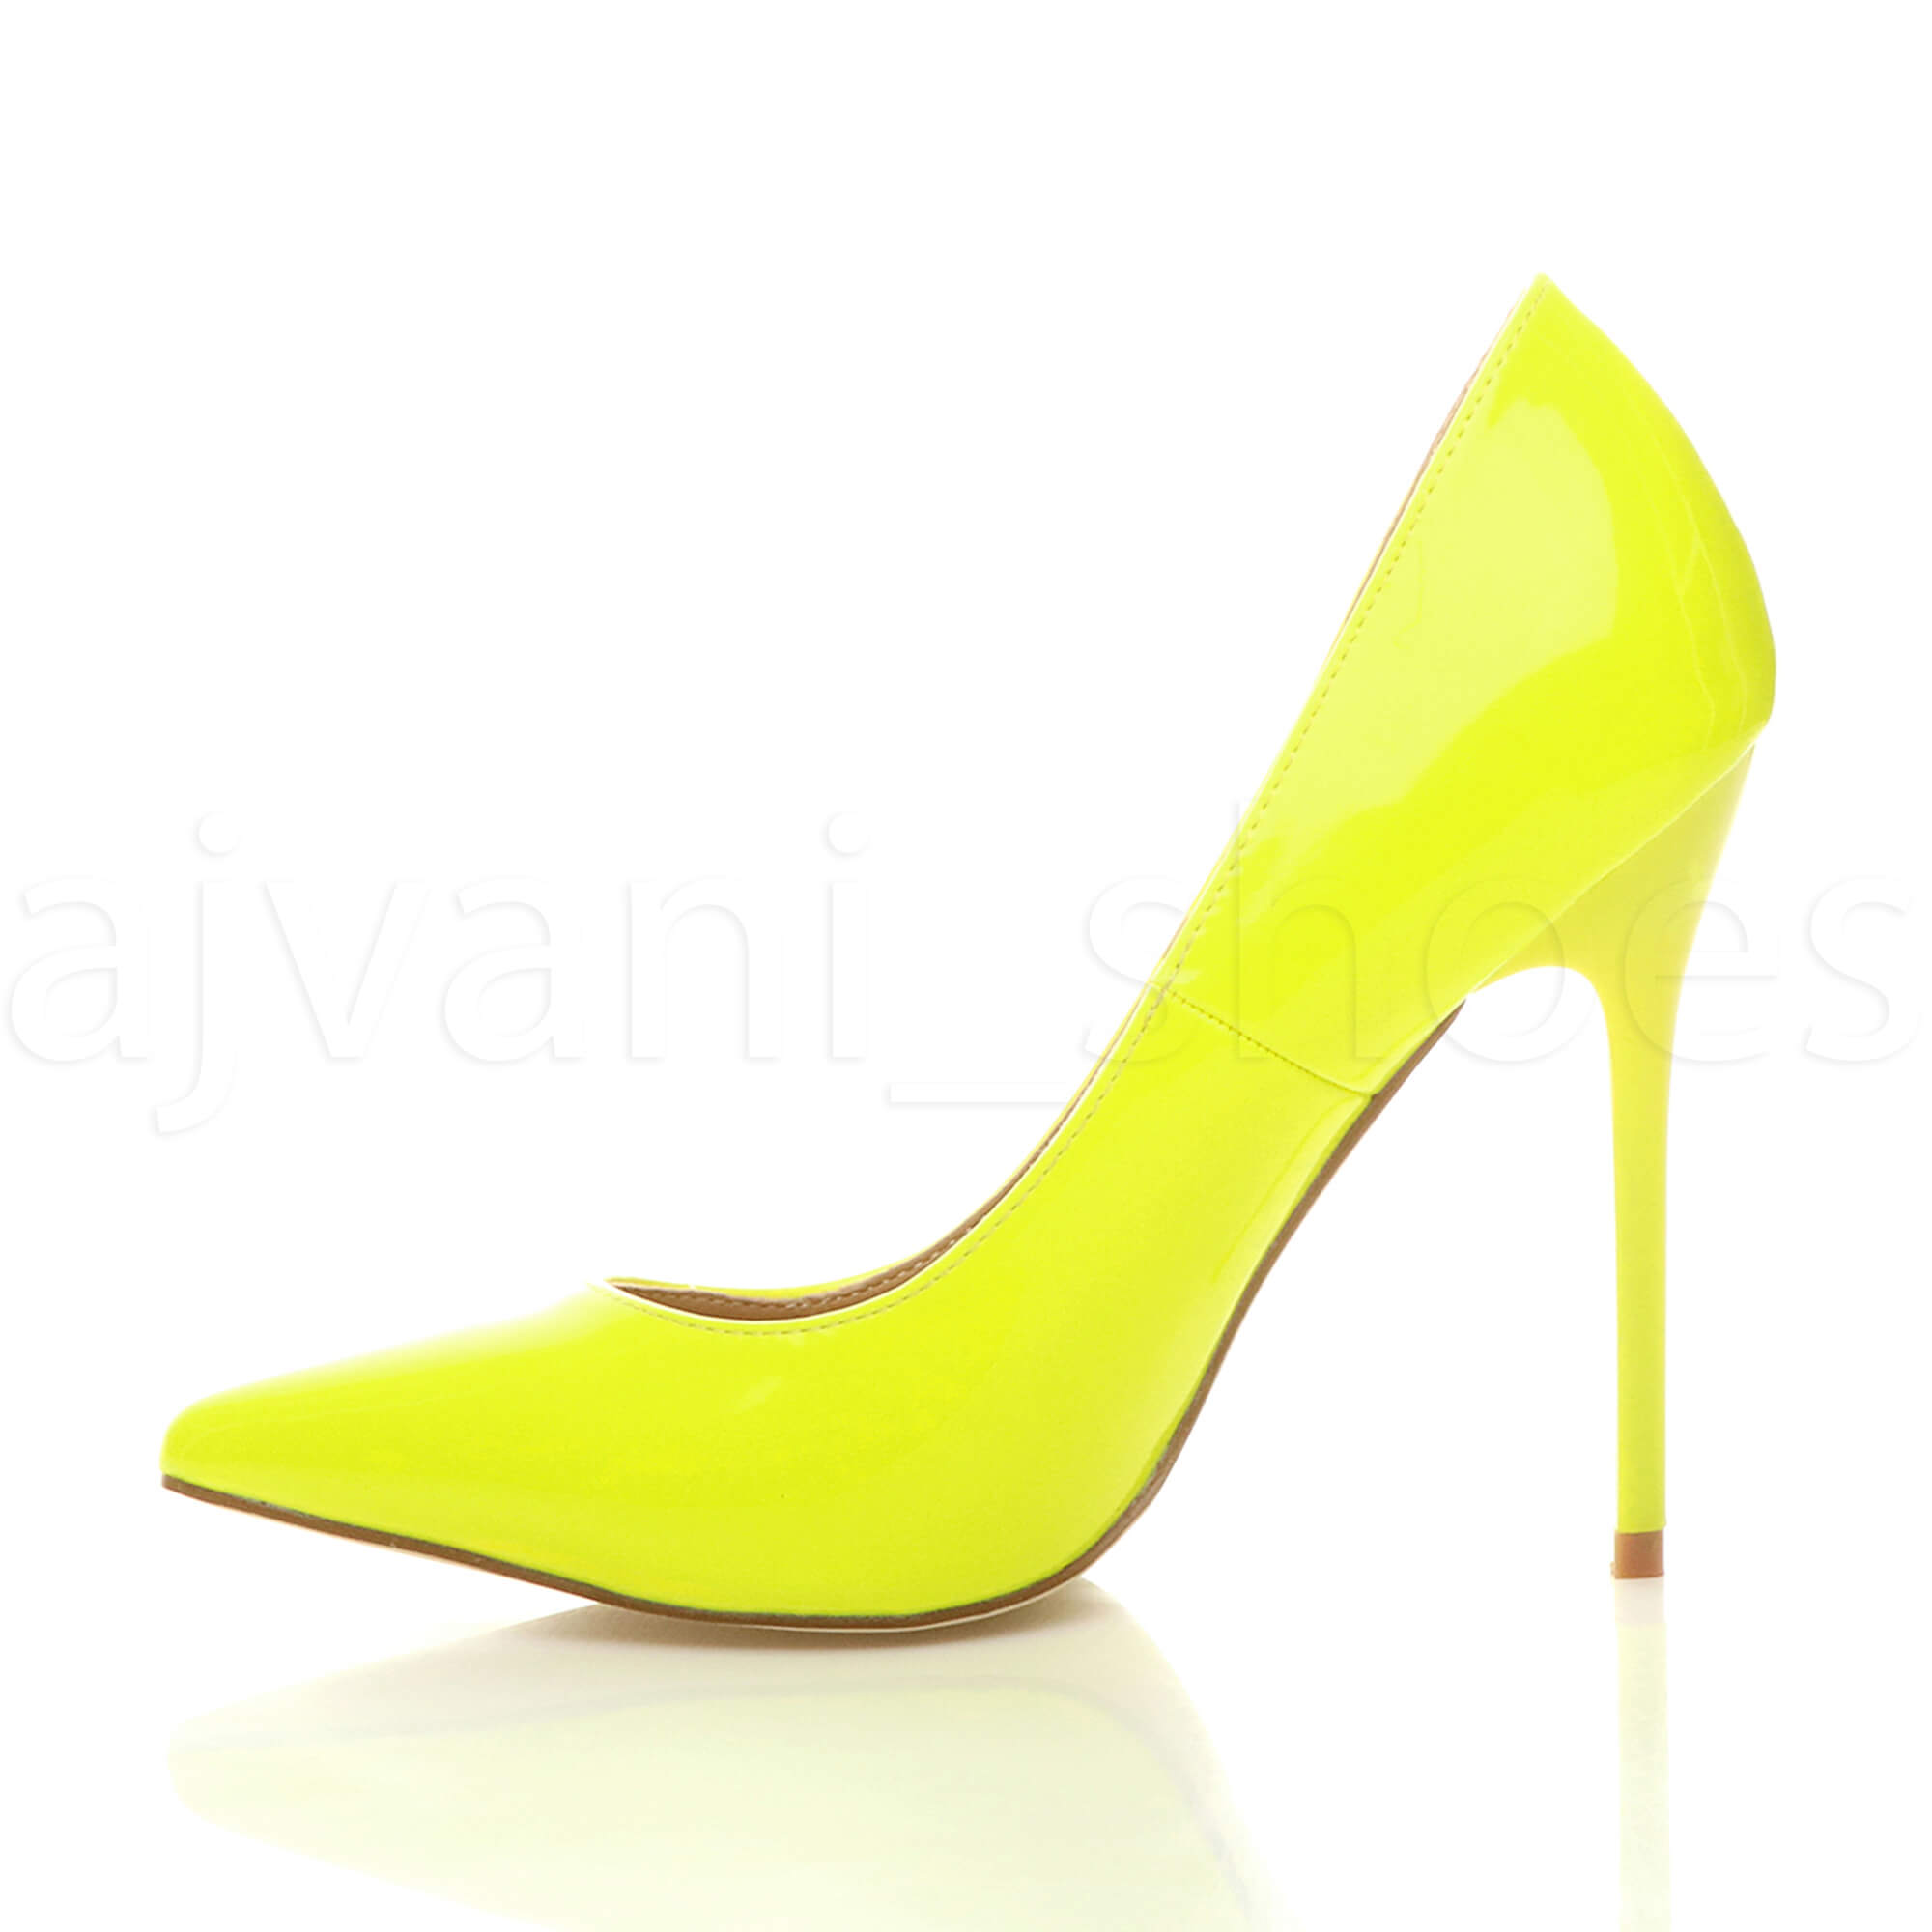 WOMENS-LADIES-HIGH-HEEL-POINTED-CONTRAST-COURT-SMART-PARTY-WORK-SHOES-PUMPS-SIZE thumbnail 130